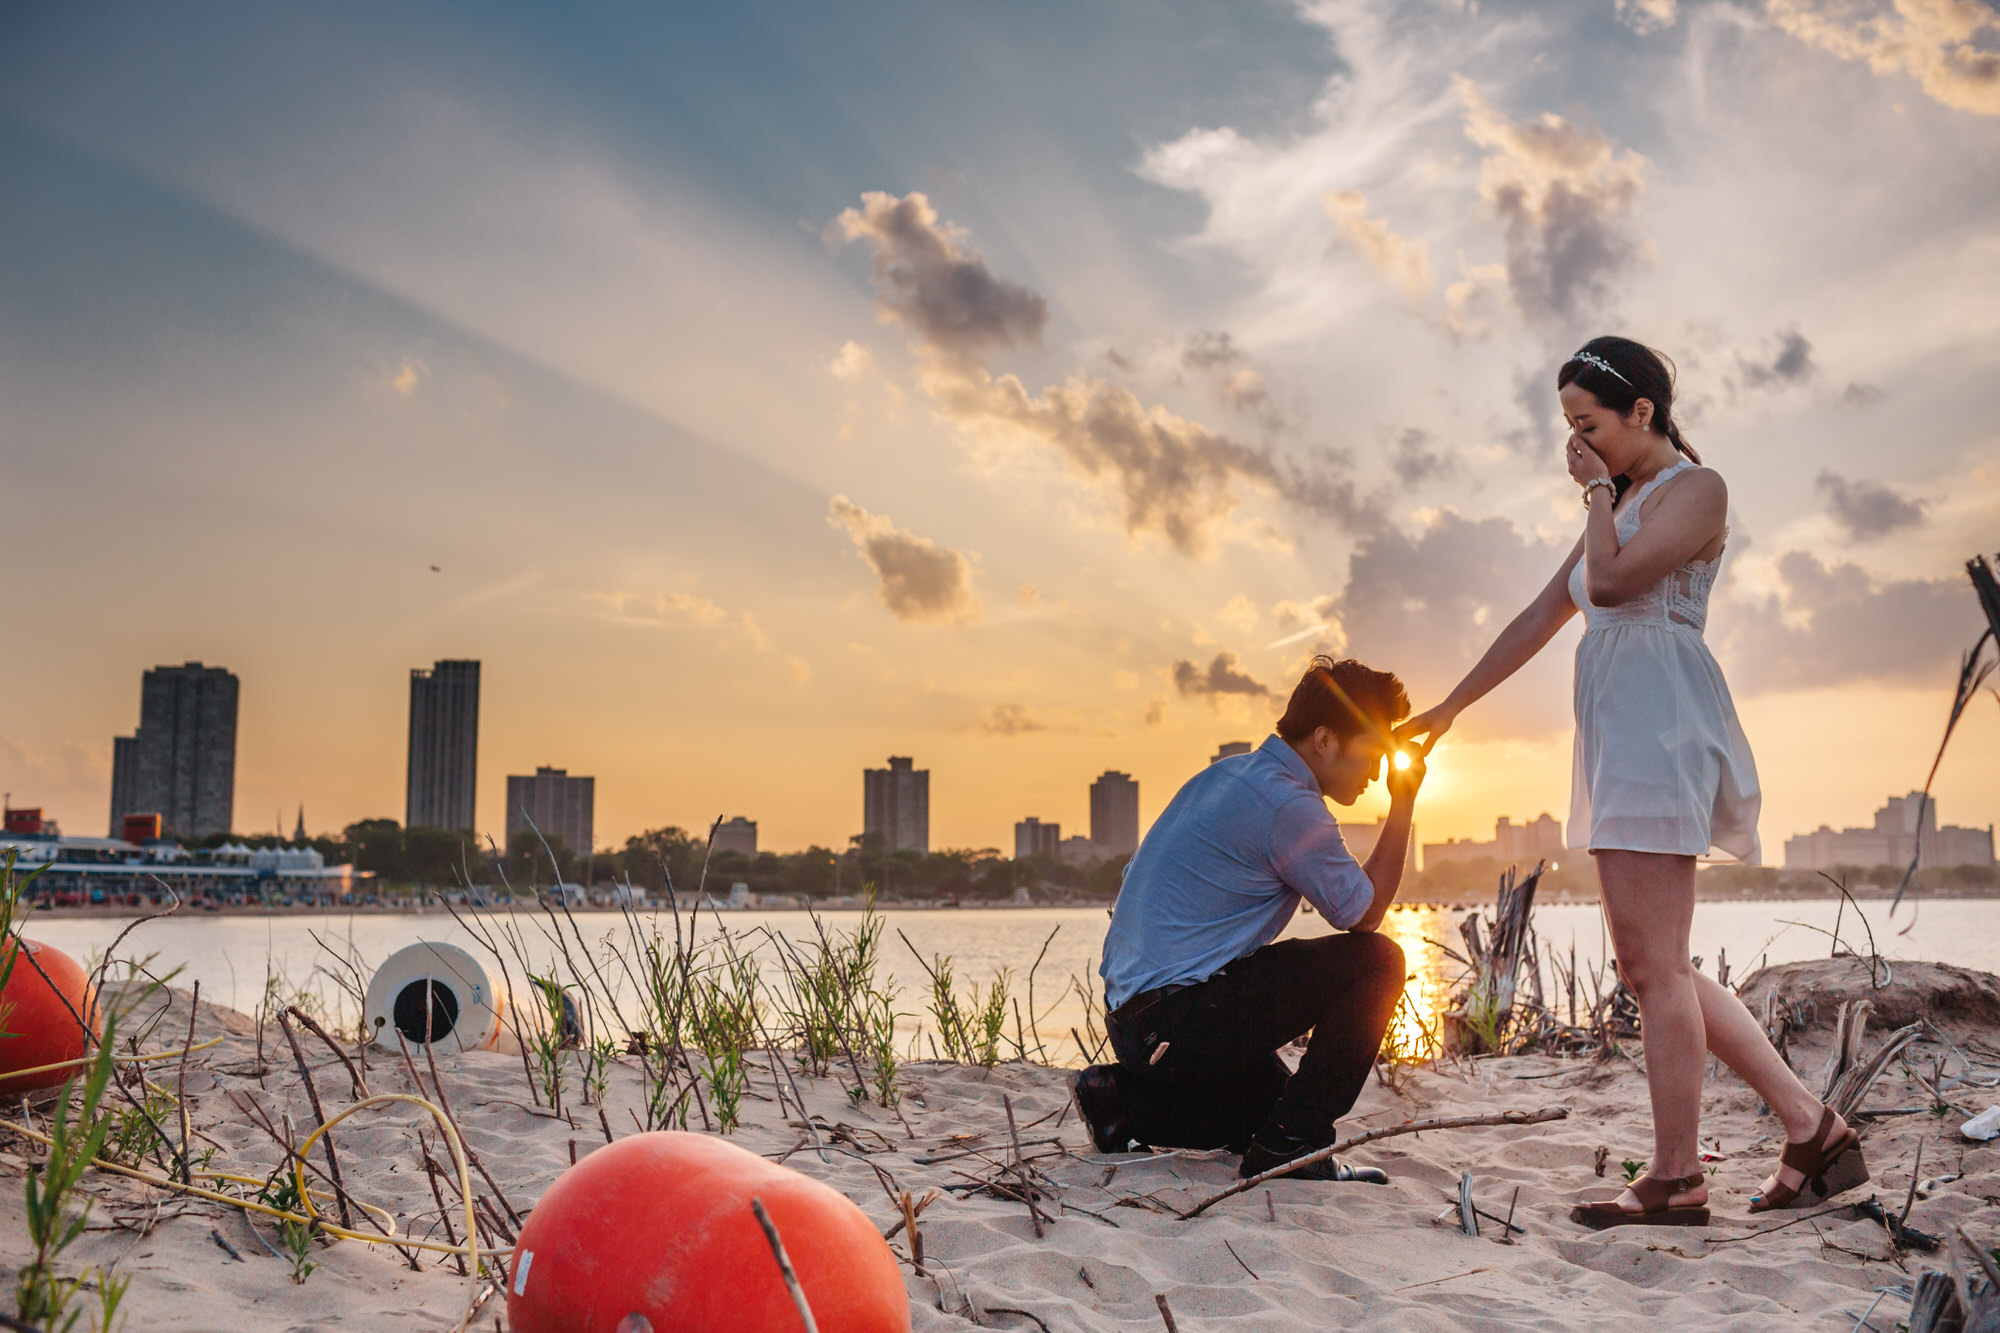 Proposal by the beach - photo by Ken Pak